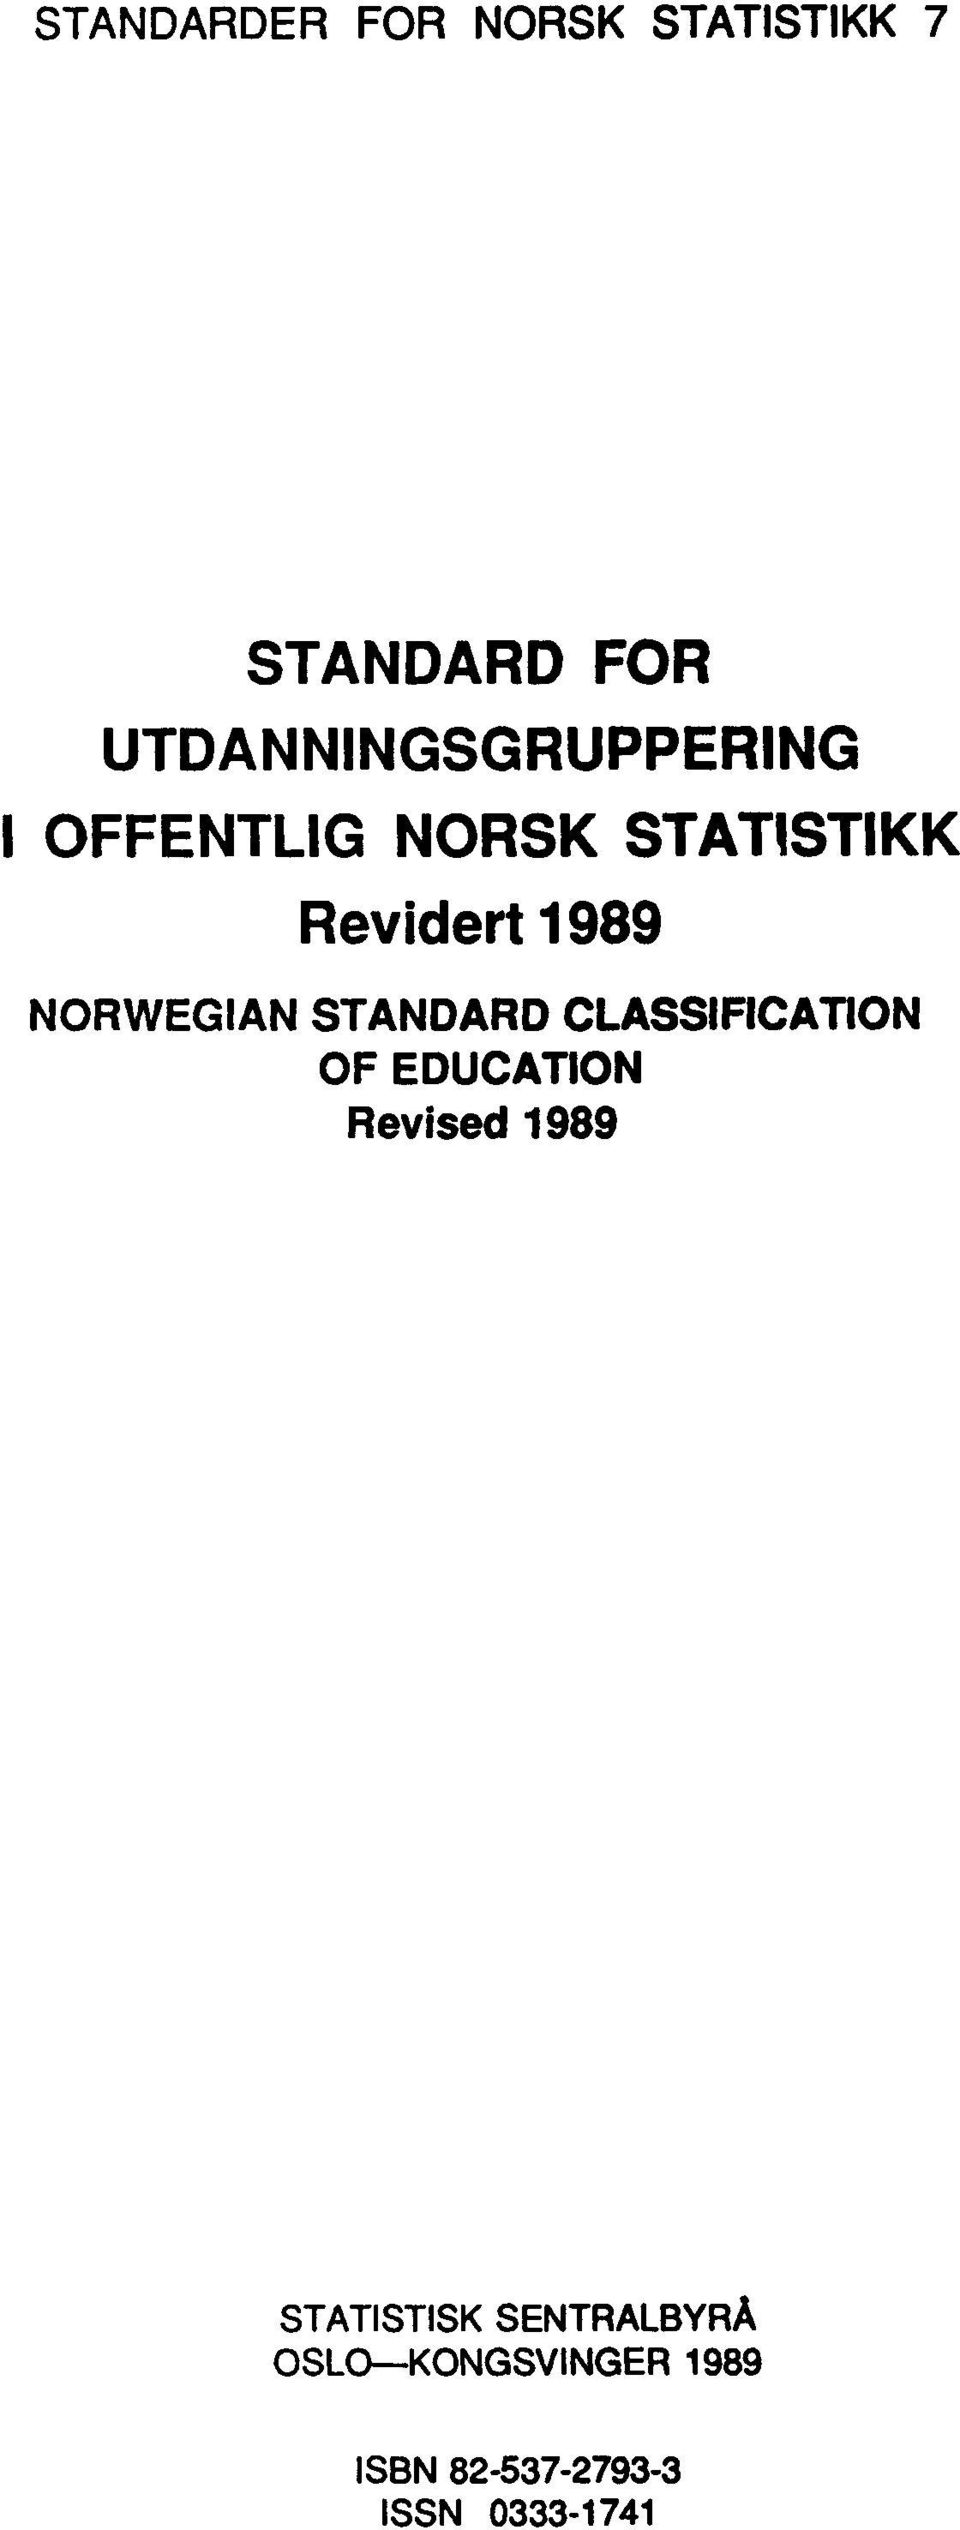 1989 NORWEGIAN STANDARD CLASSIFICATION OF EDUCATION Revised